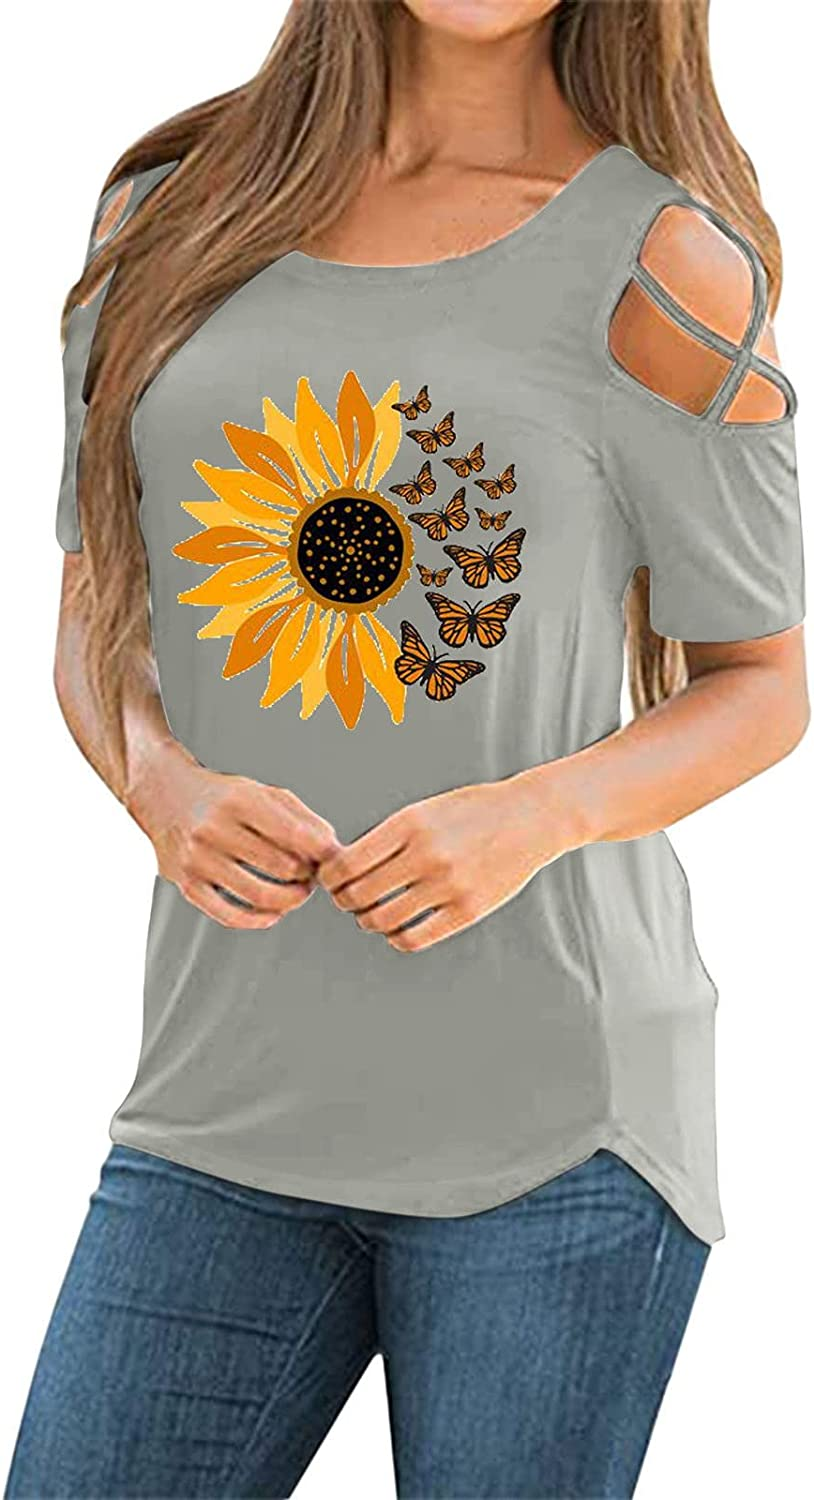 Dealing full price reduction LIUguoo T Shirt for Reservation Women Shor Shoulder Tops Cold Cute